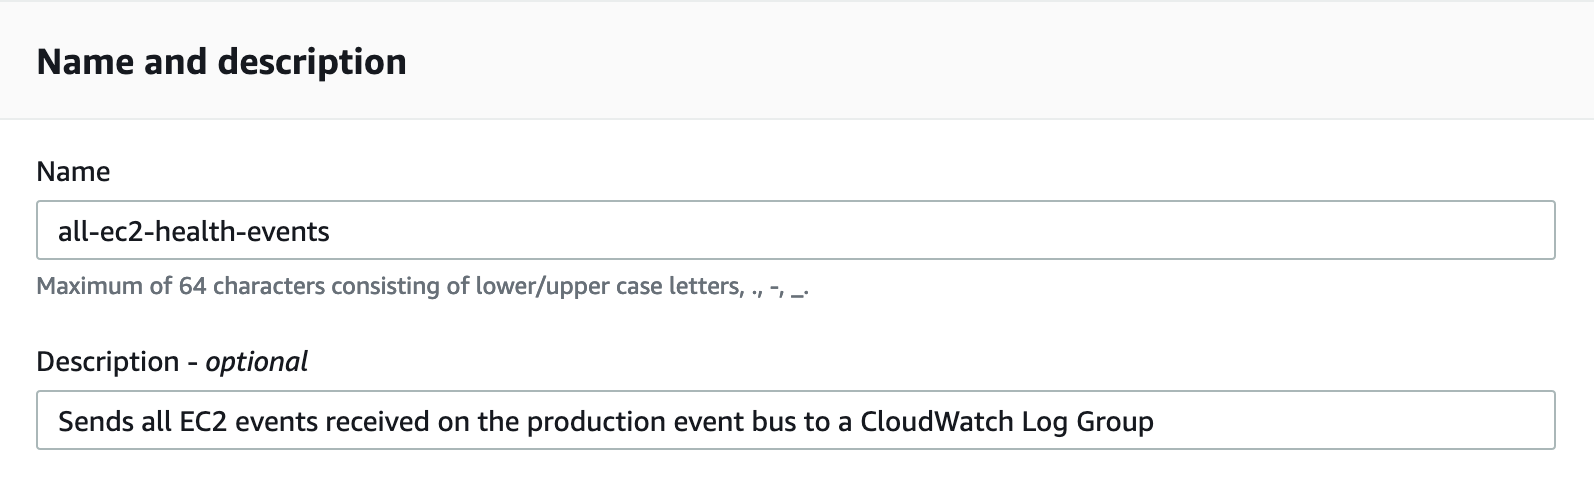 In the Name field, all-ec2-production-events is displayed. The Description field displays the following text: Sends all EC2 events received on the production event bus to a CloudWatch log group.